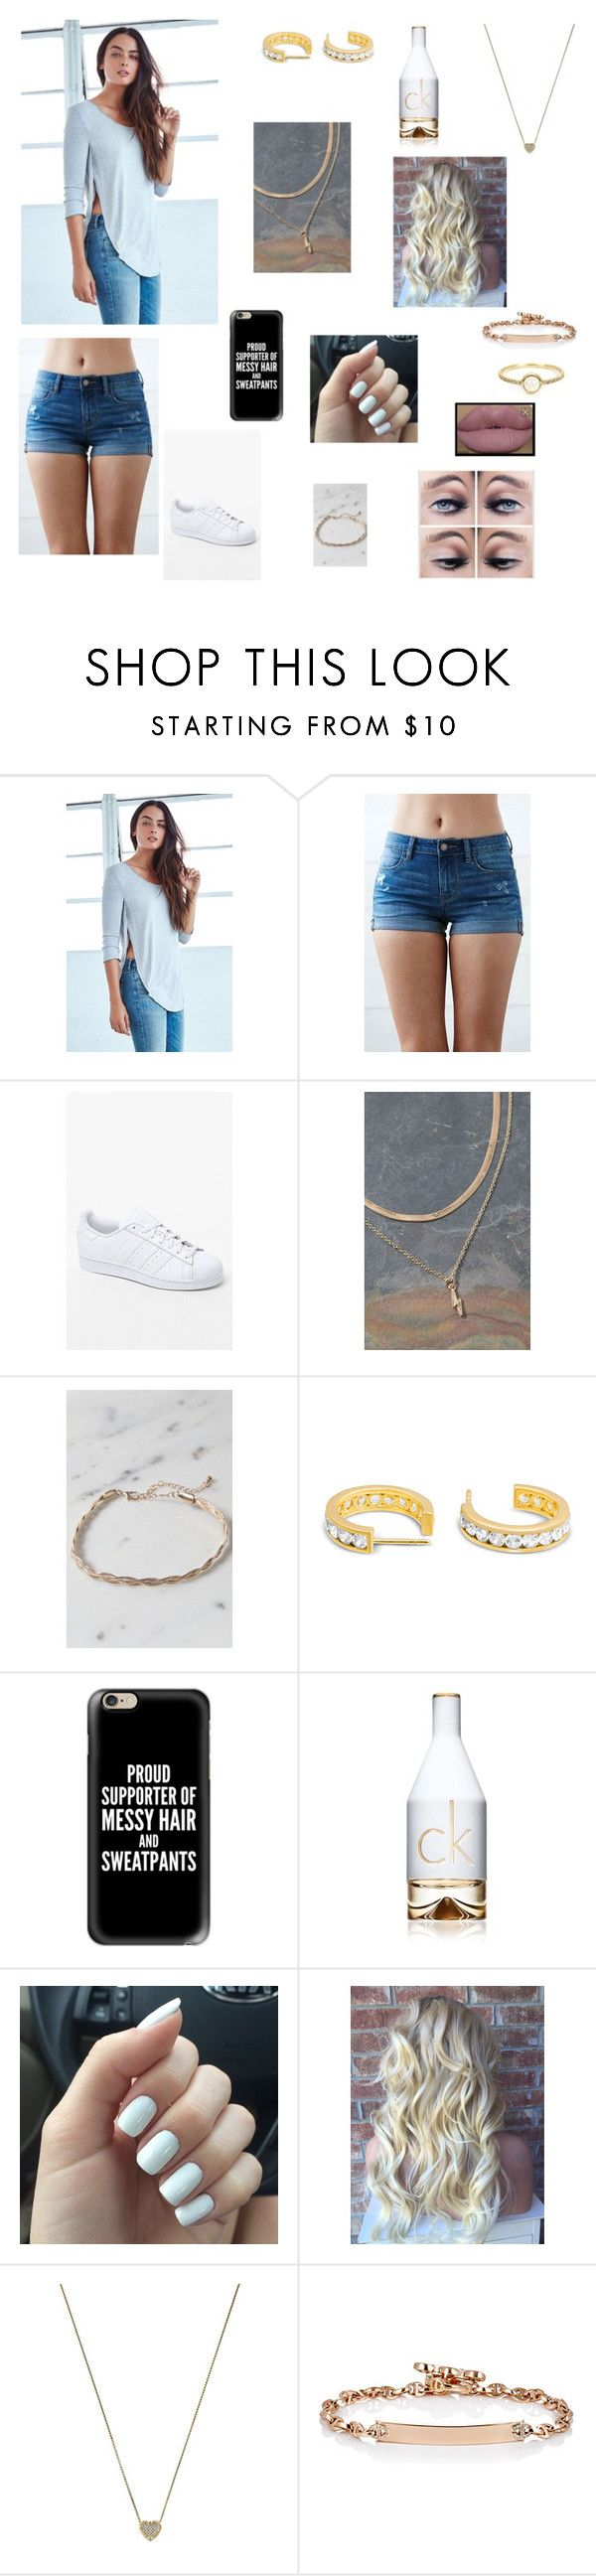 Untitled #218 by katrine-frid on Polyvore featuring Me to We, Bullhead Denim Co., adidas, LA: Hearts, Michael Kors, Hoorsenbuhs, Irene Neuwirth, Casetify and Calvin Klein